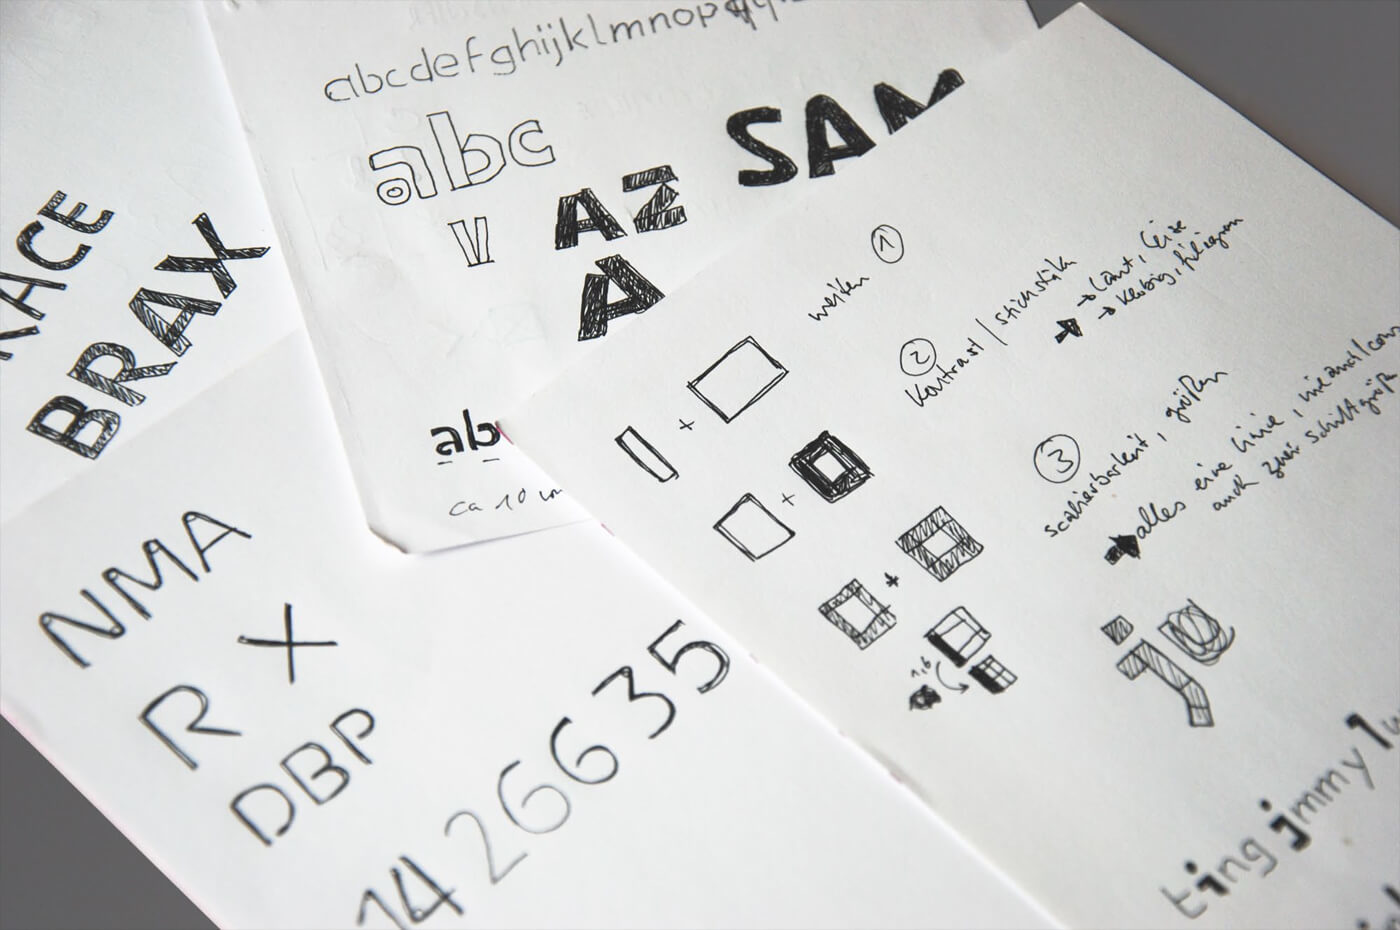 Sam Corporate Font Type Mates 11